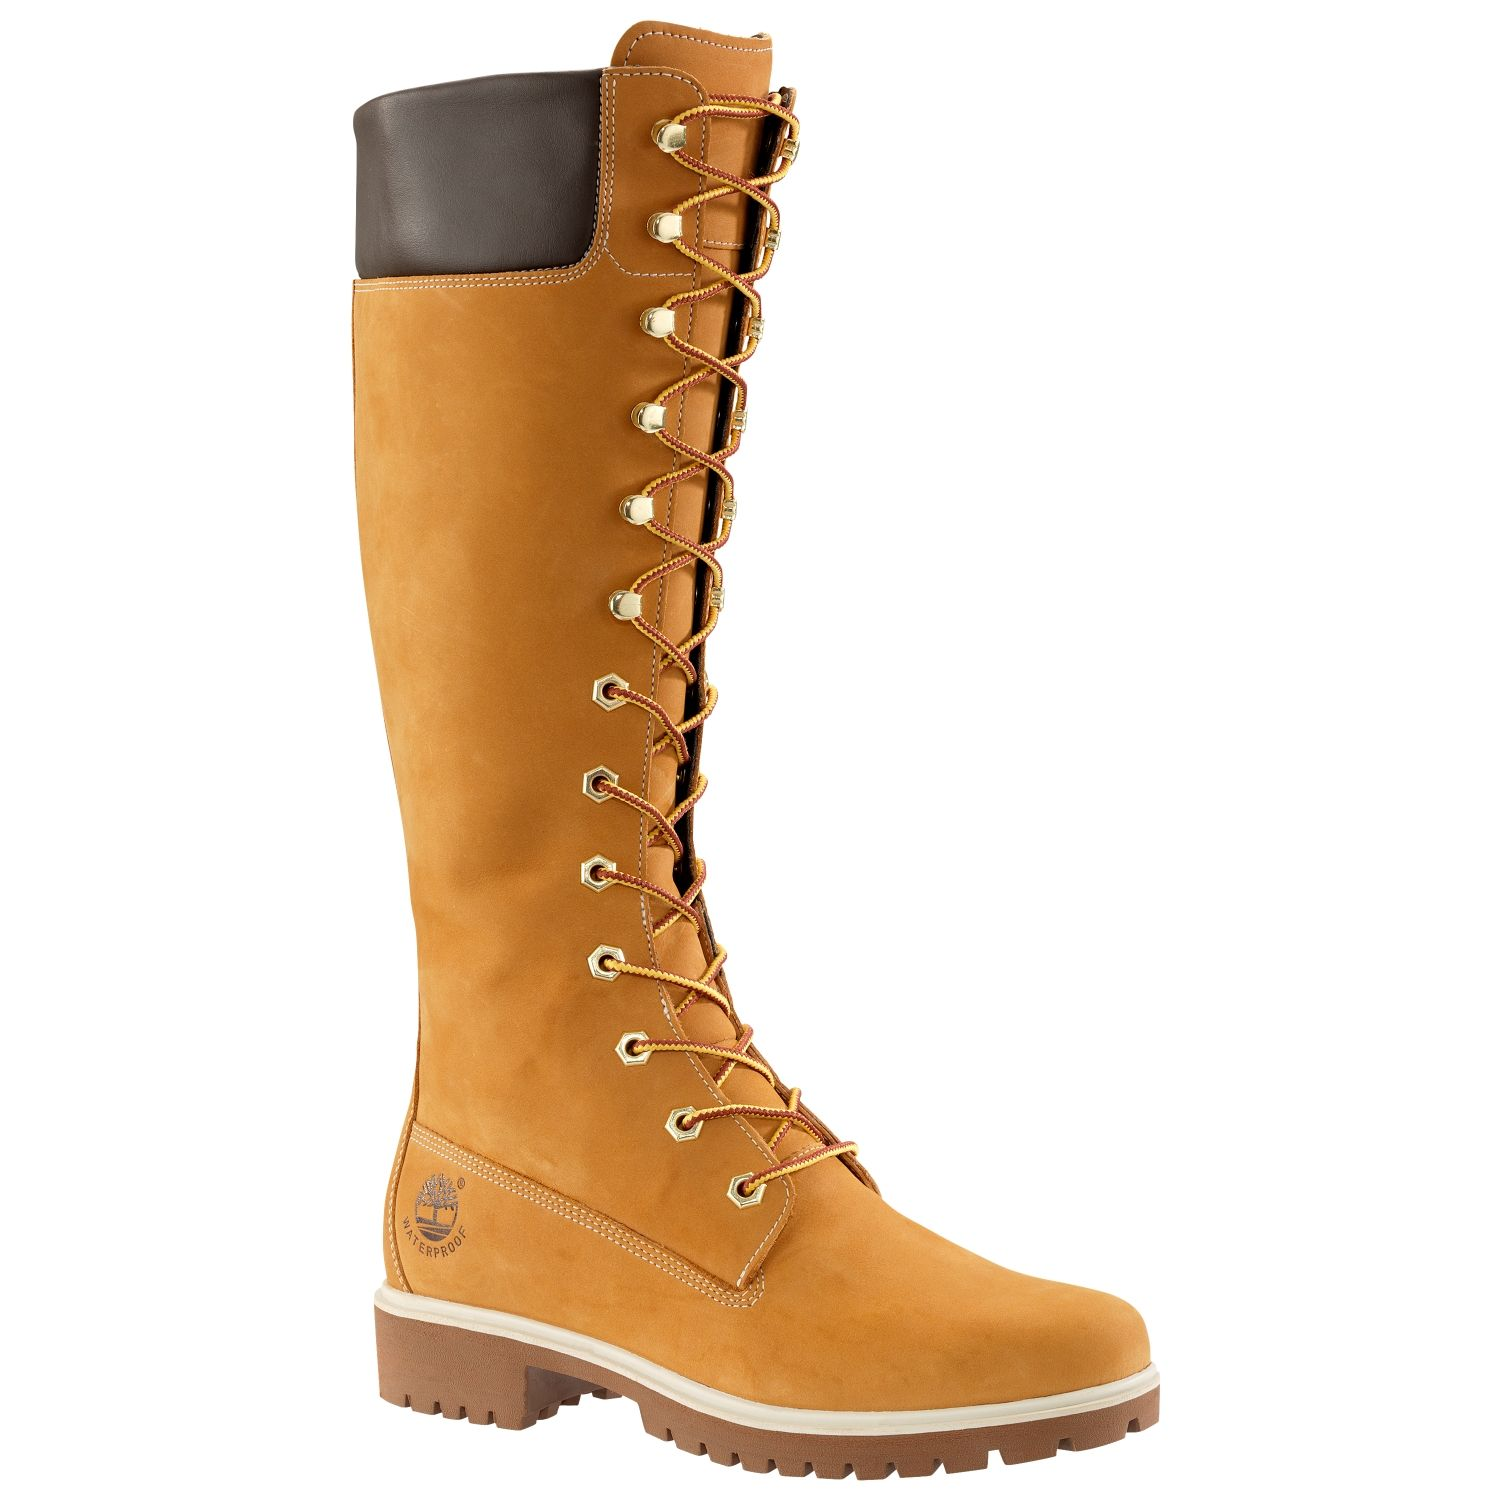 Timberland Women's Premium 14 Inch Waterproof Lace up Boots Style 3752R  Wheat